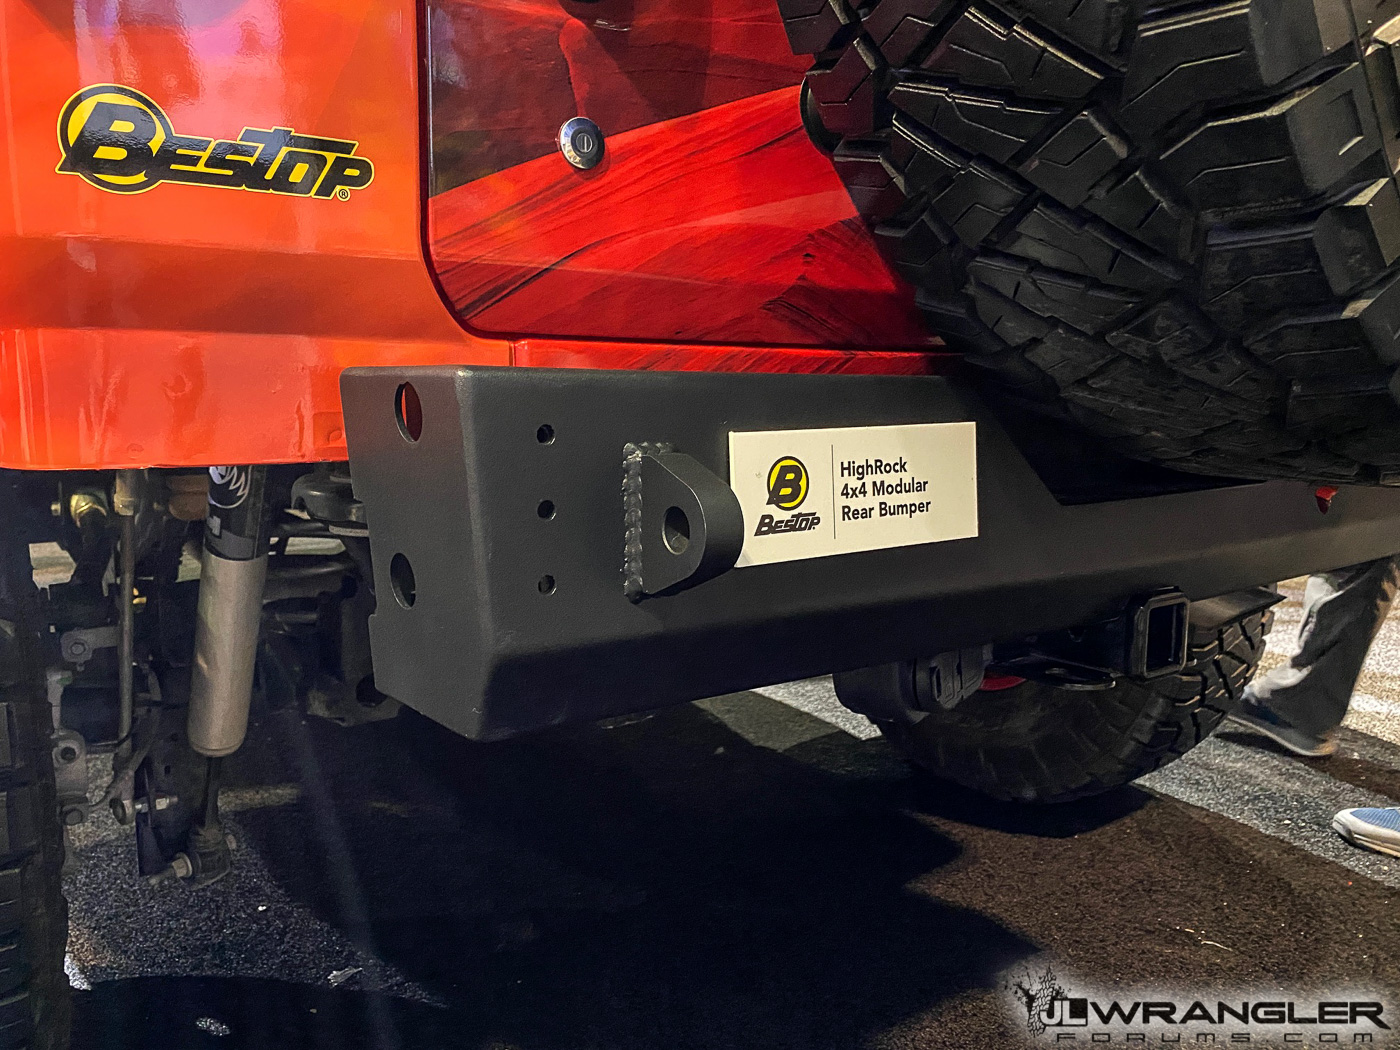 Bestop-Trektop-Ultra-Soft-Top-JLU-Wrangler-SEMA-Build-20.jpg